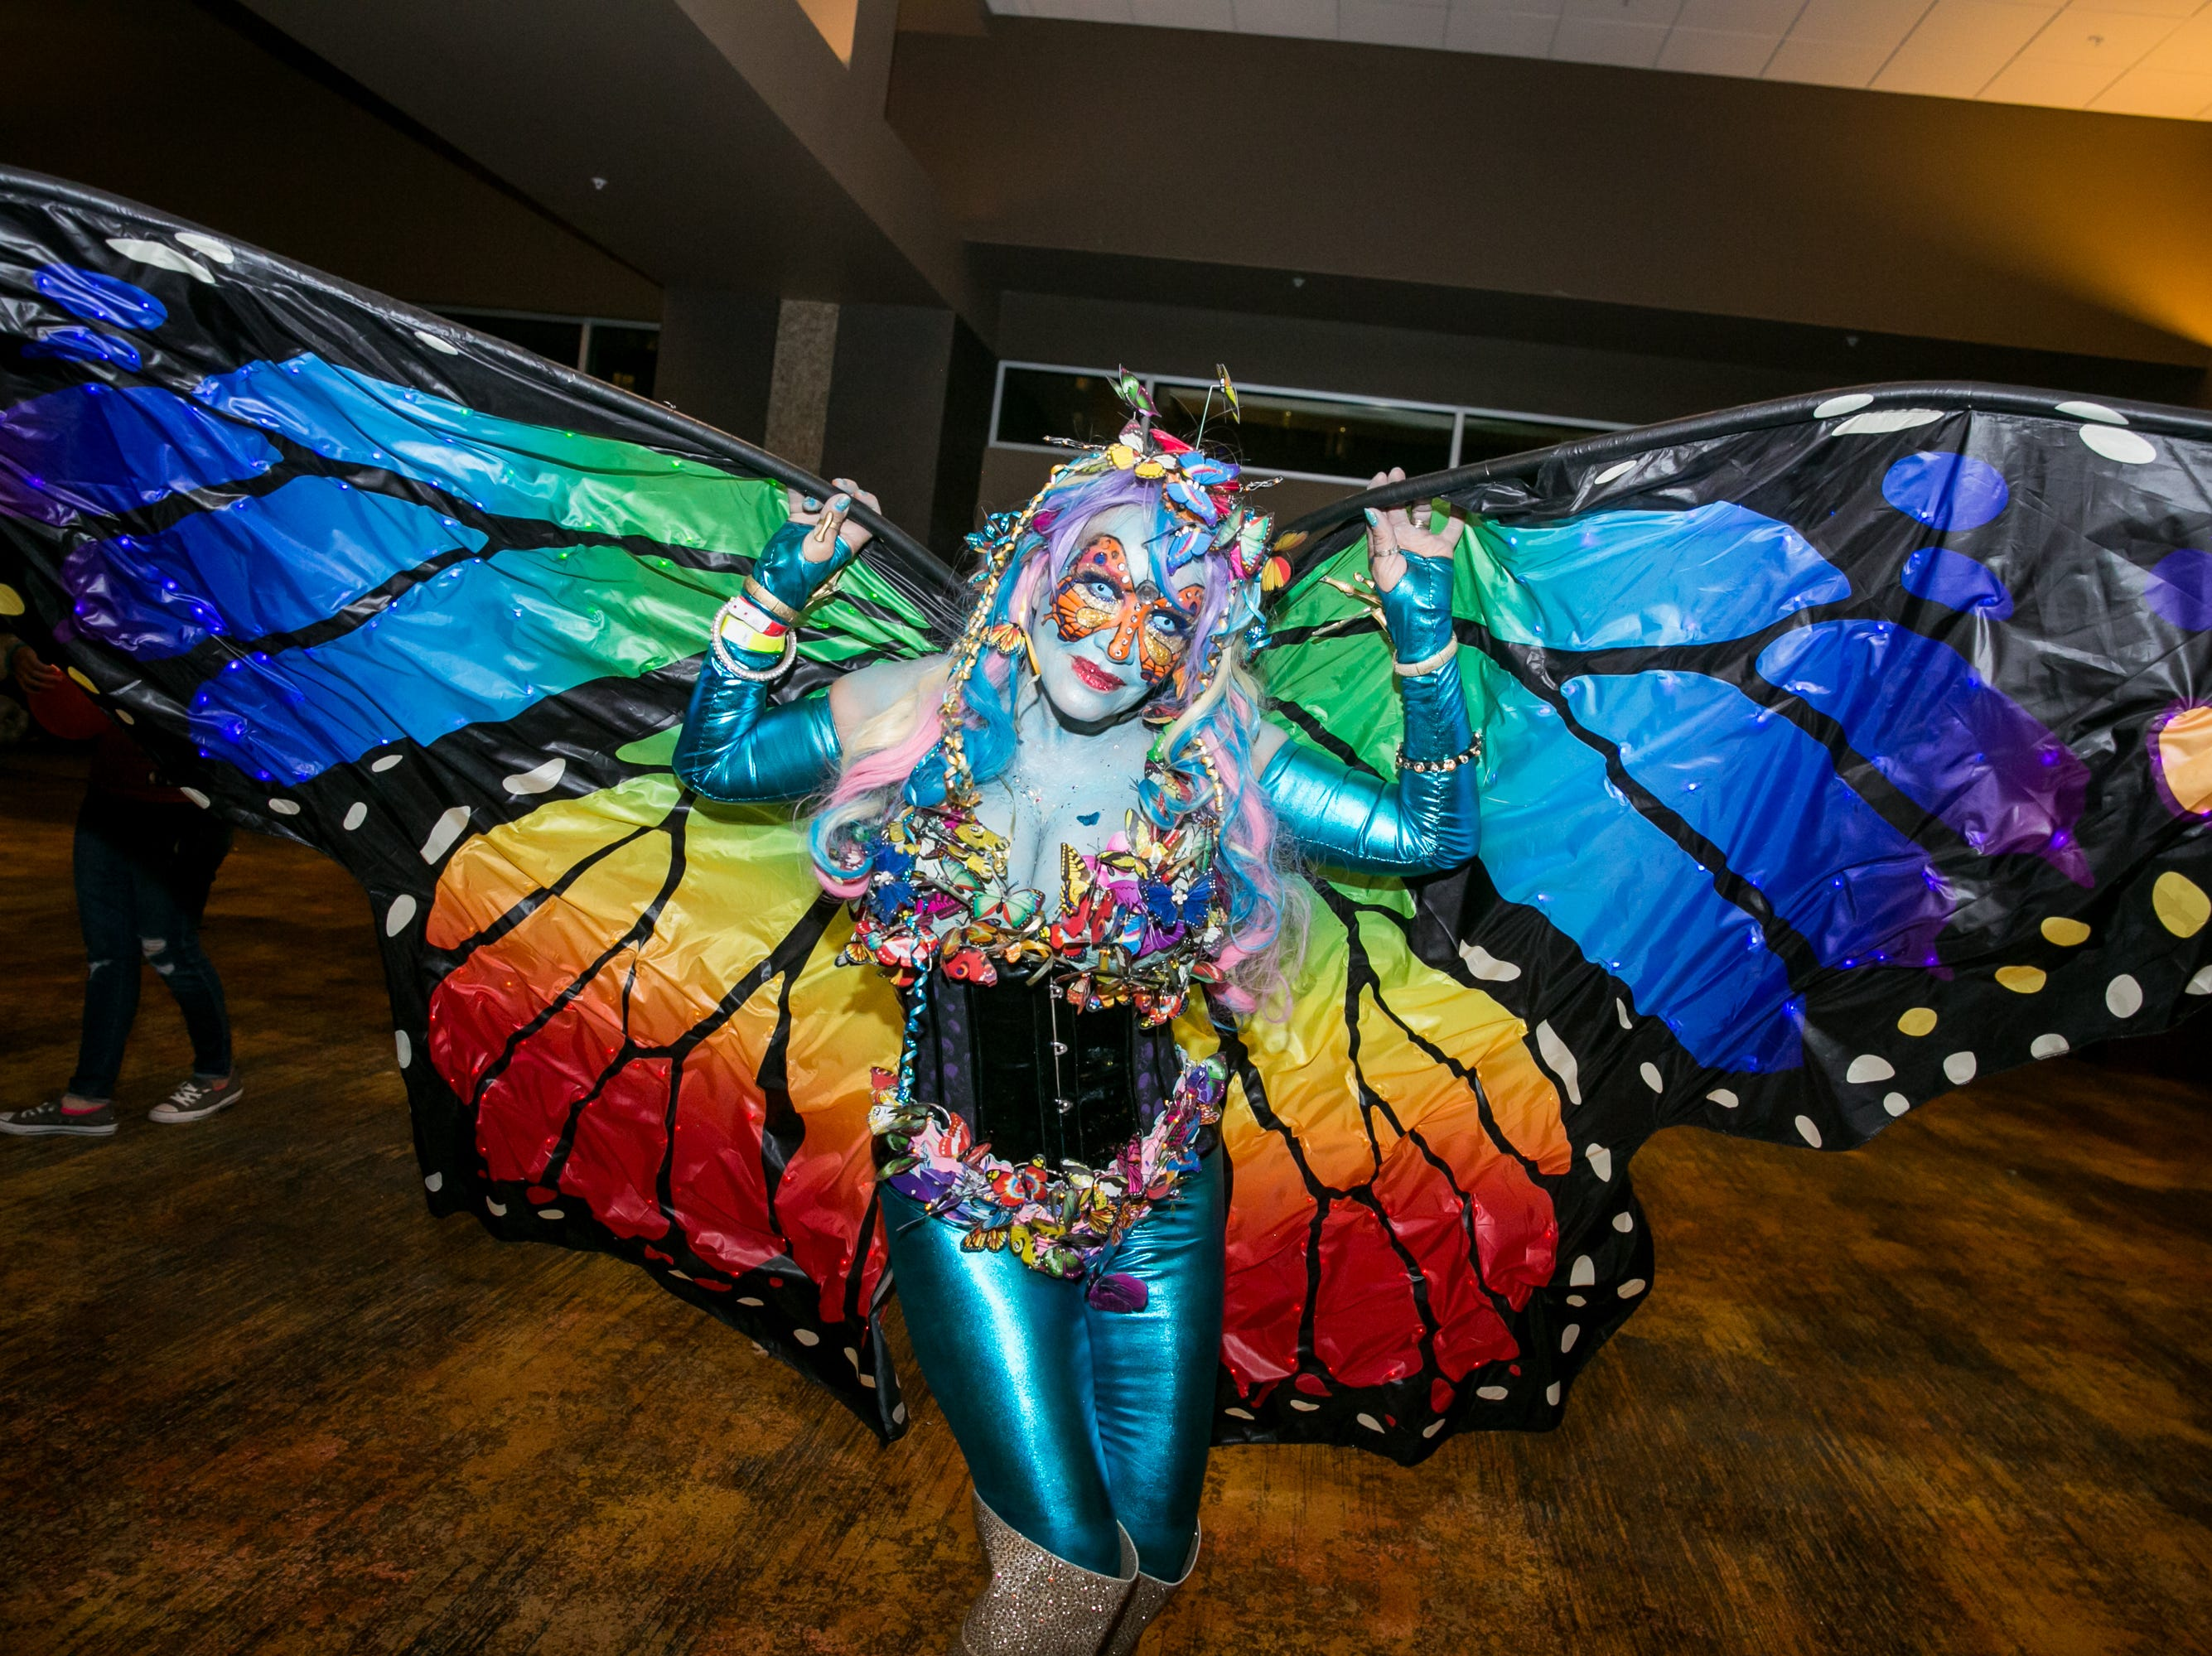 This butterfly costume was superb during Wicked Ball at Talking Stick Resort on Saturday, October 27, 2018.